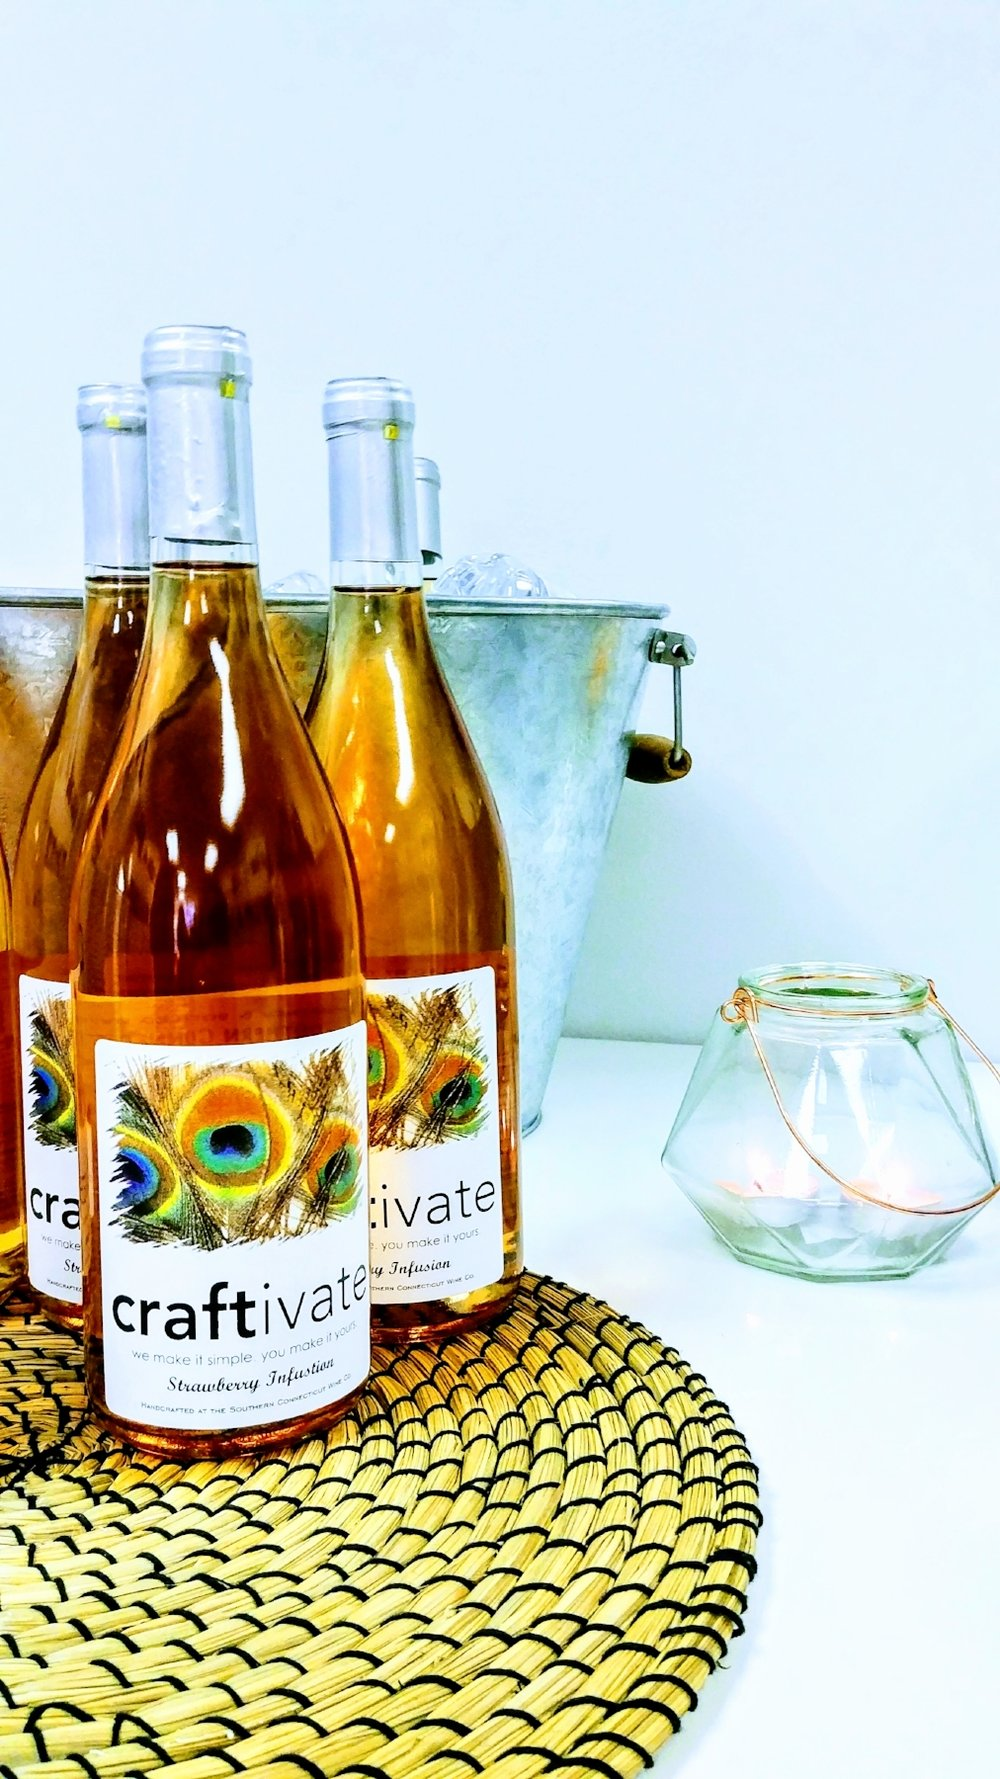 Craftivate wine